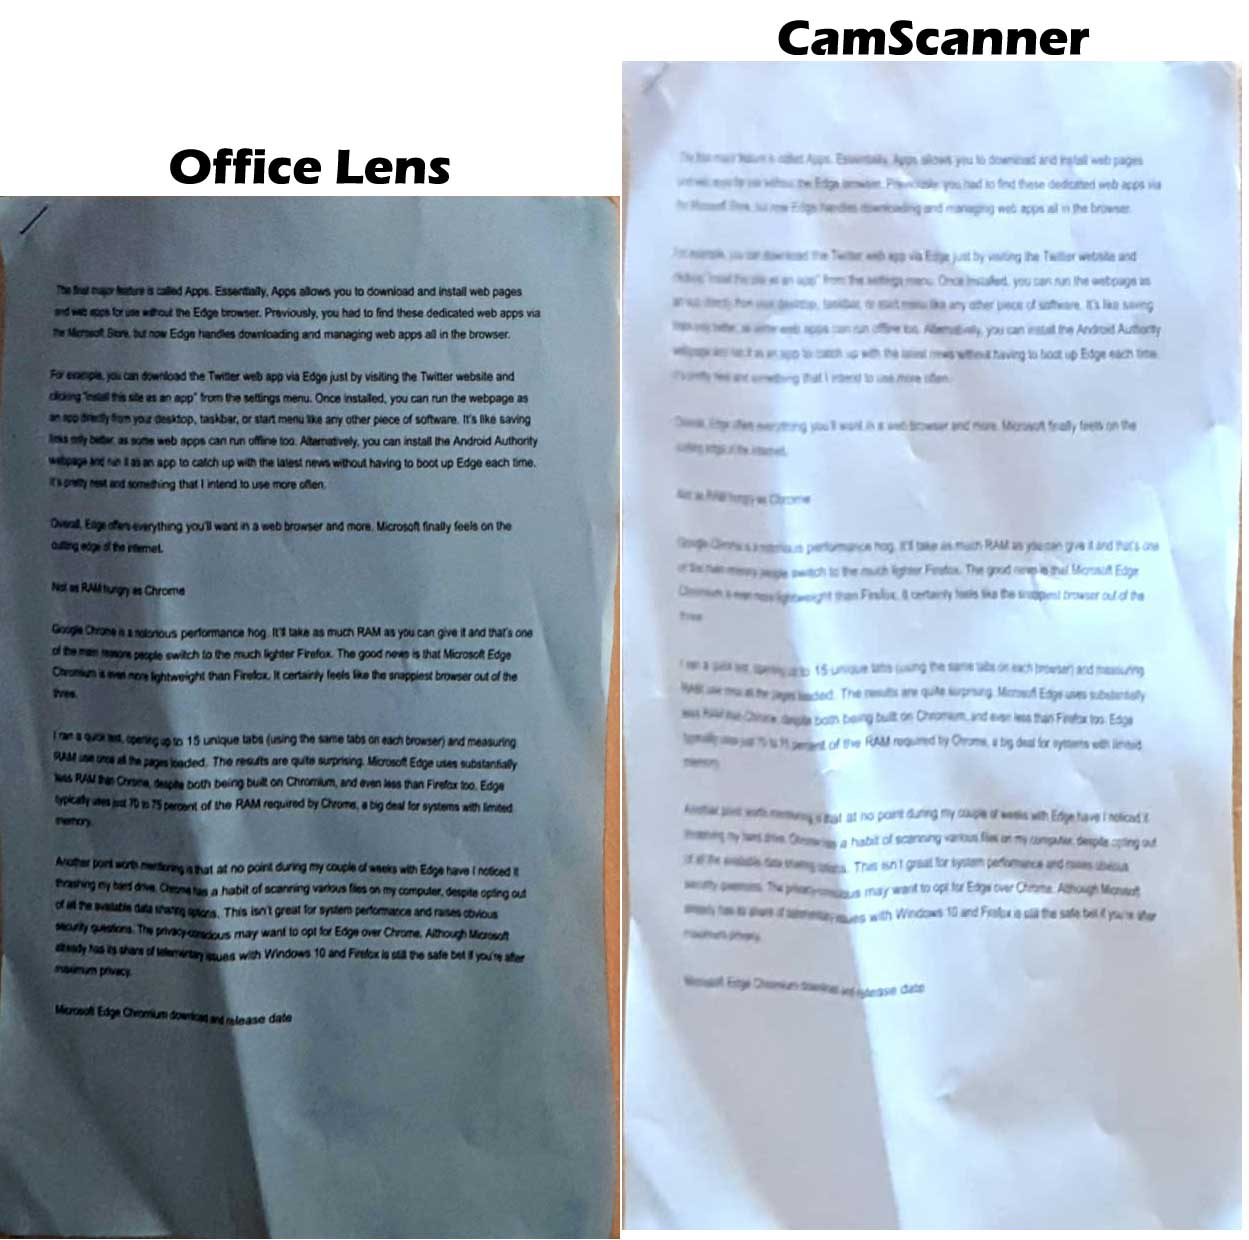 Angle Capture - Office Lens vs CamScanner